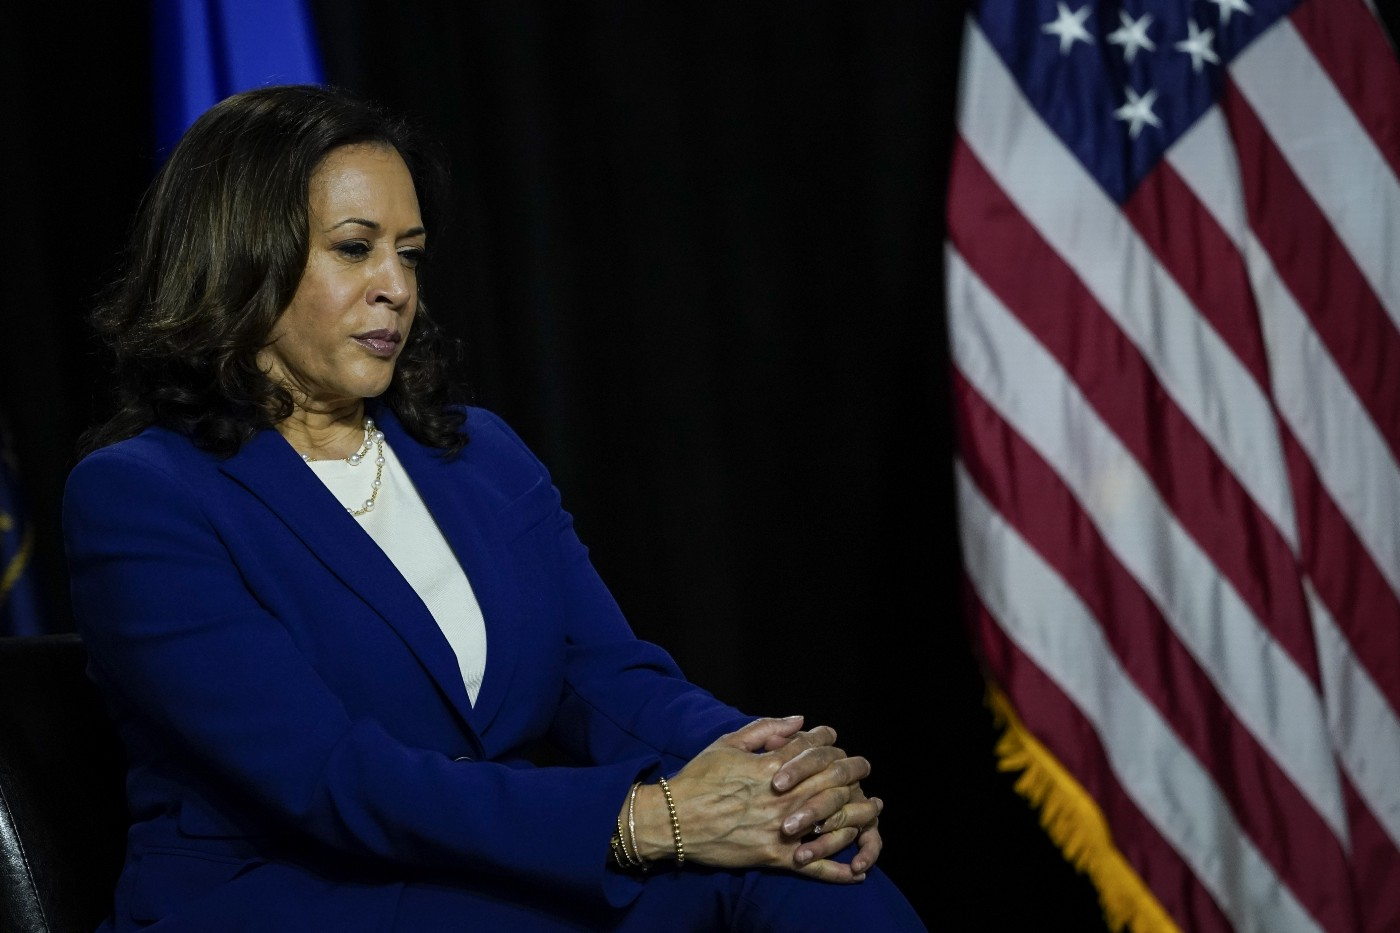 Democratic vice presidential candidate Kamala Harris sits and listen to Joe Biden's remarks at the Alexis Dupont High School.